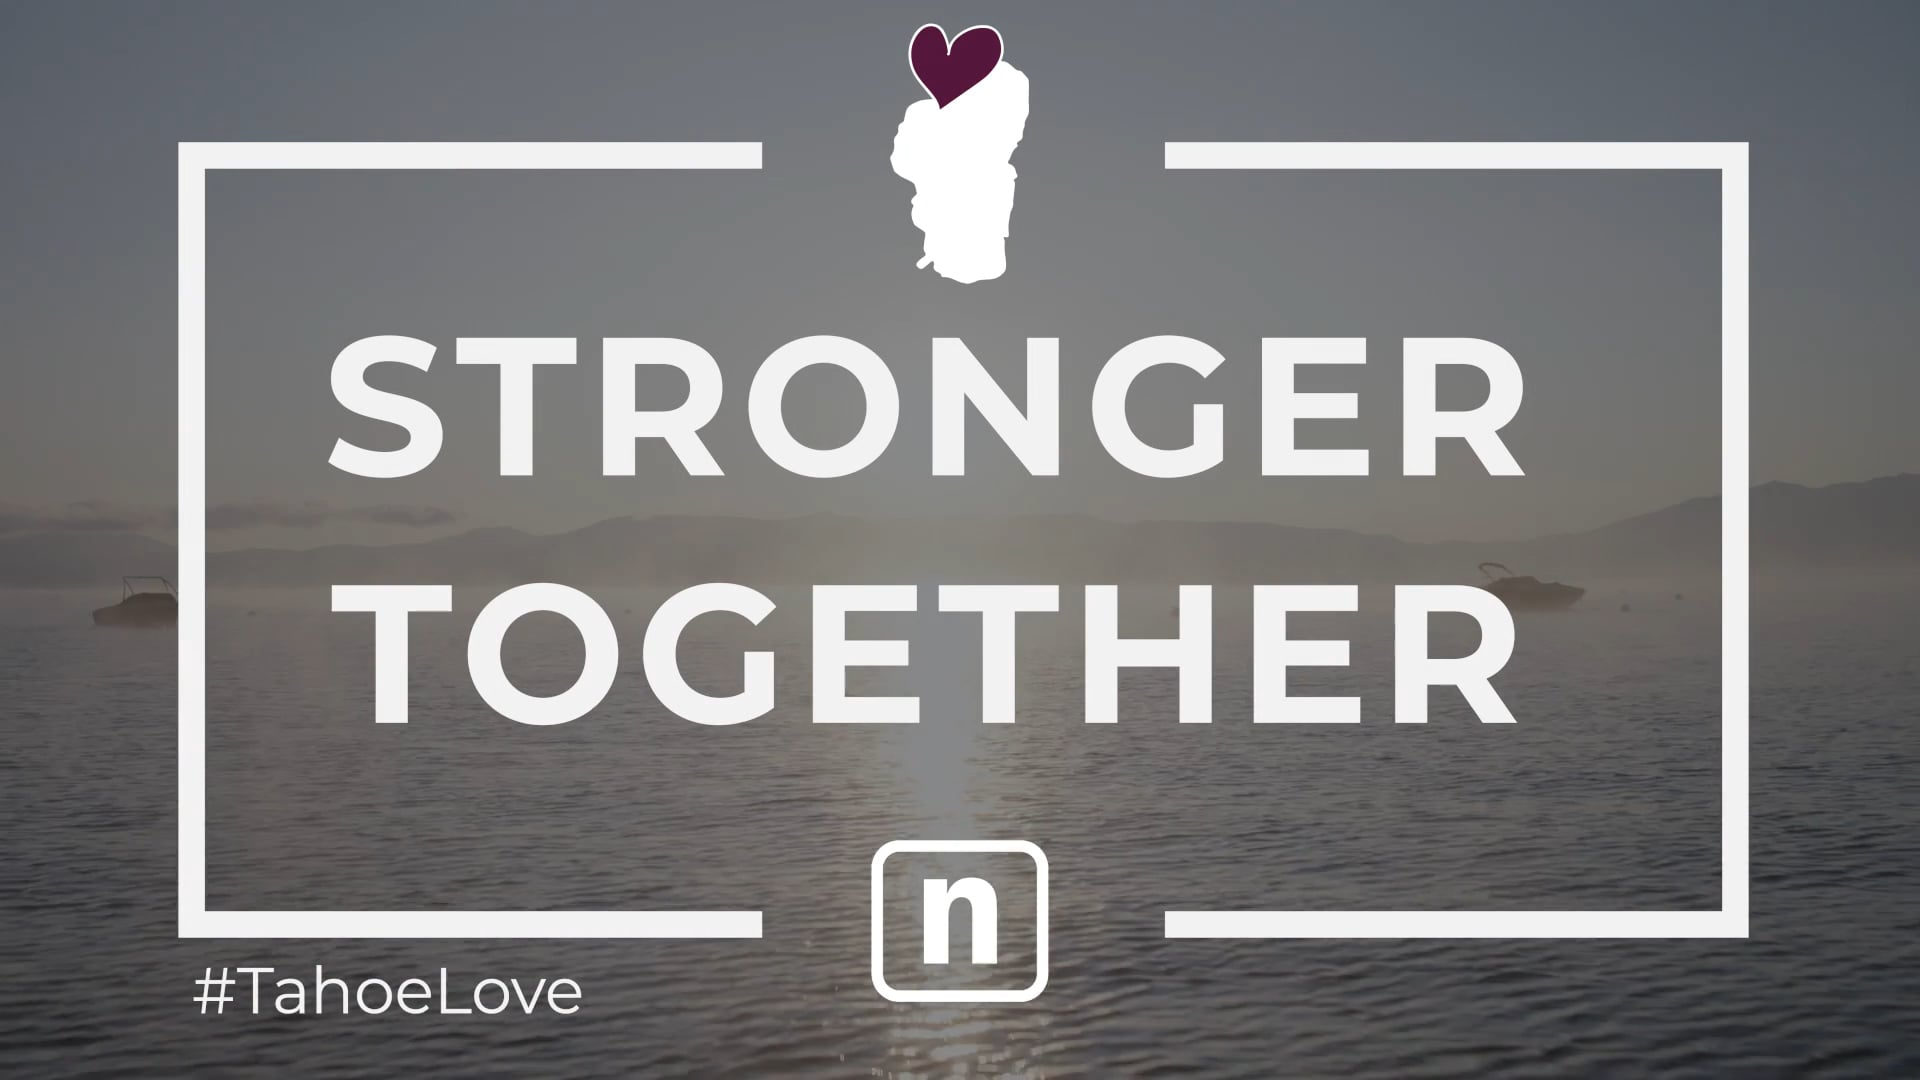 North Lake Tahoe: We're Stronger Together